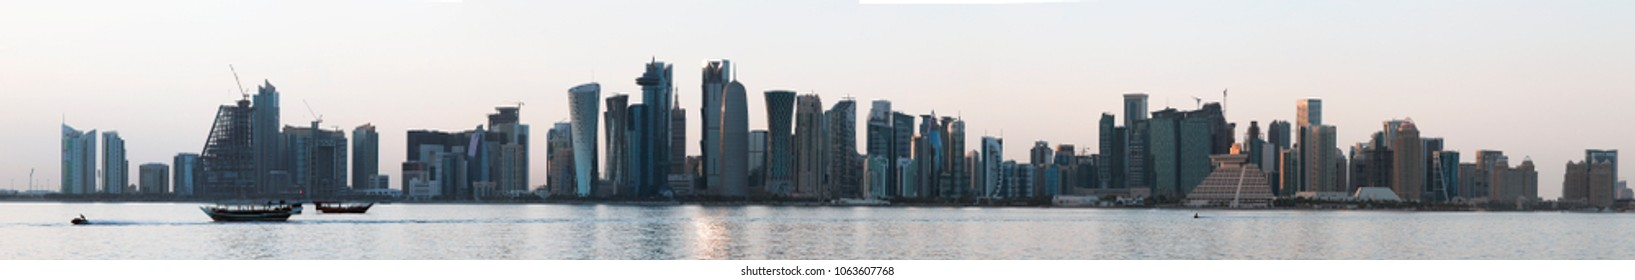 DOHA, QATAR - April 7, 2018: Panoramic view of the skyline in the Gulf Arab capital city, high resolution, stitched from several detailed photos